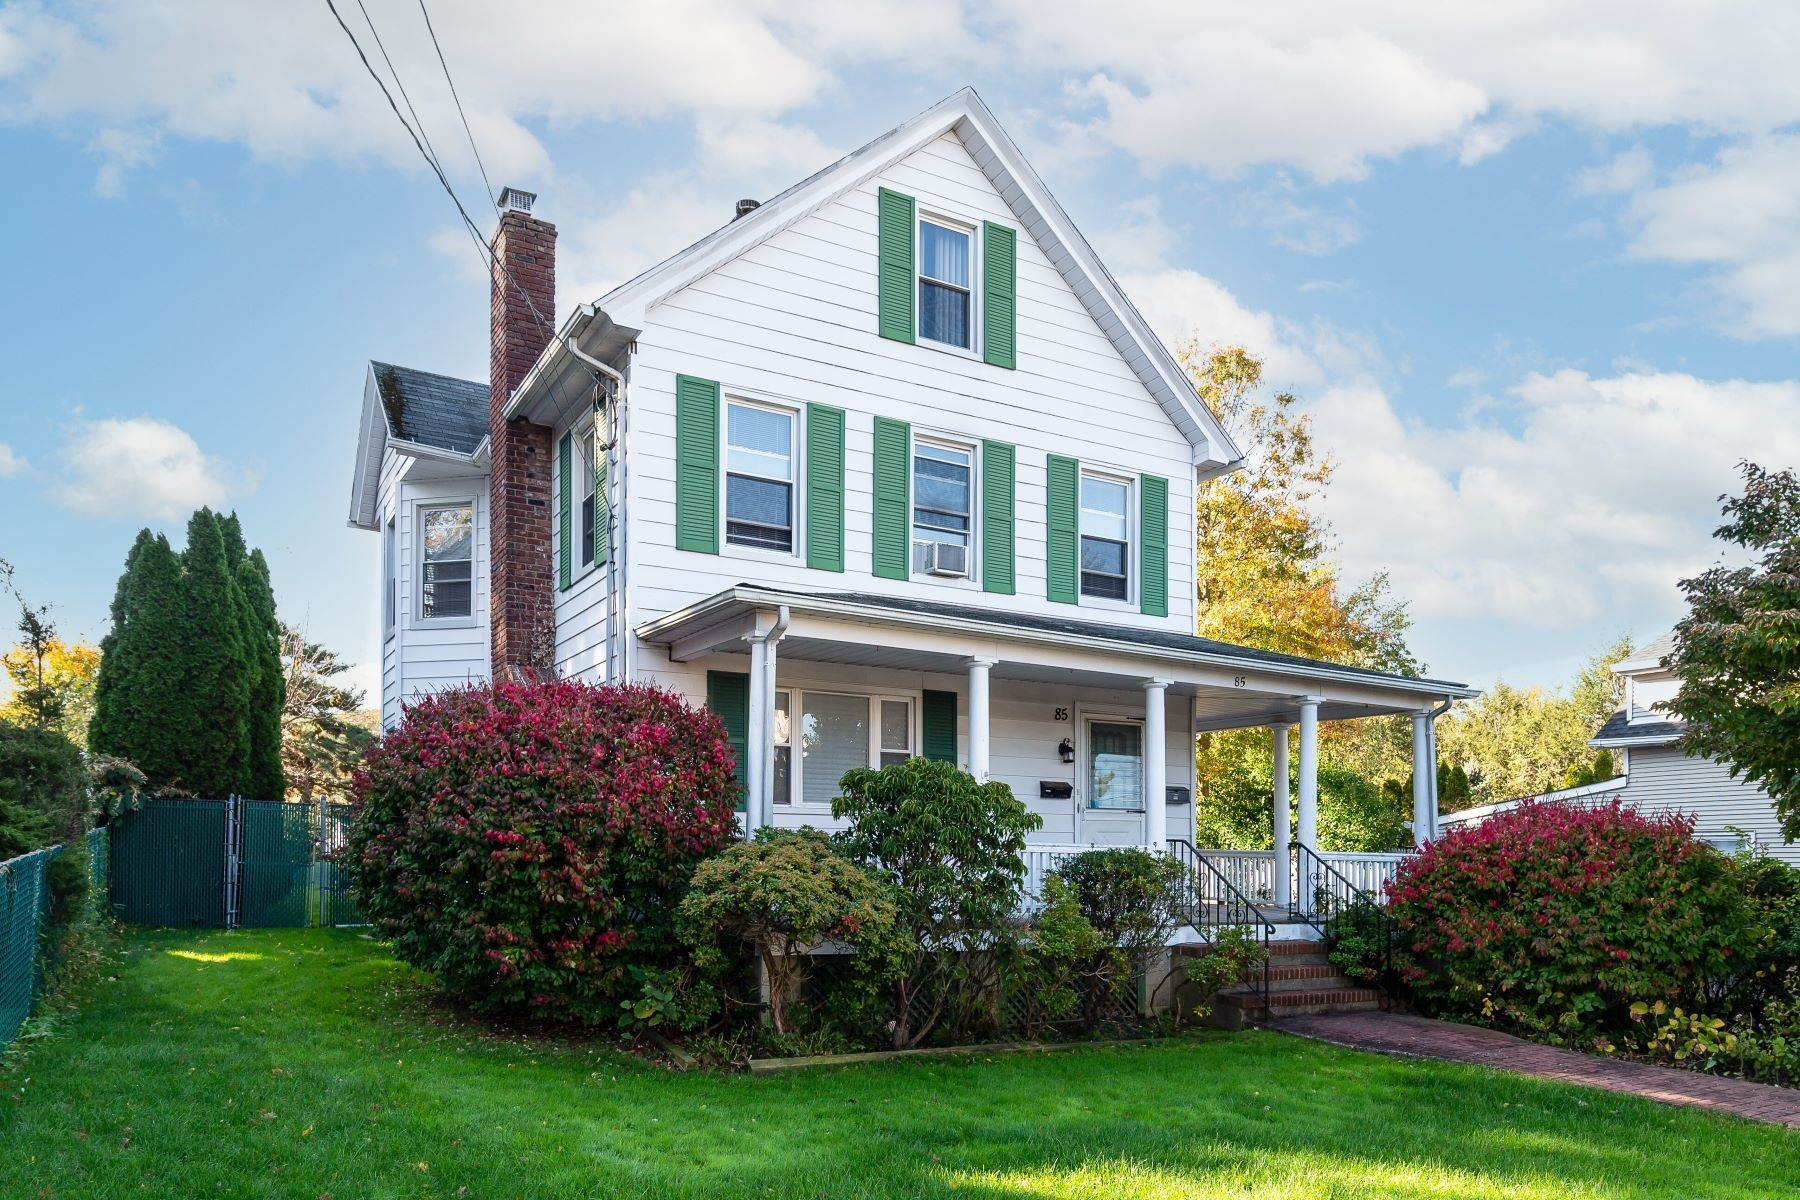 Multi-Family Homes for Sale at 85 Orchard Street, Oyster Bay, Ny, 11771 85 Orchard Street Oyster Bay, New York 11771 United States